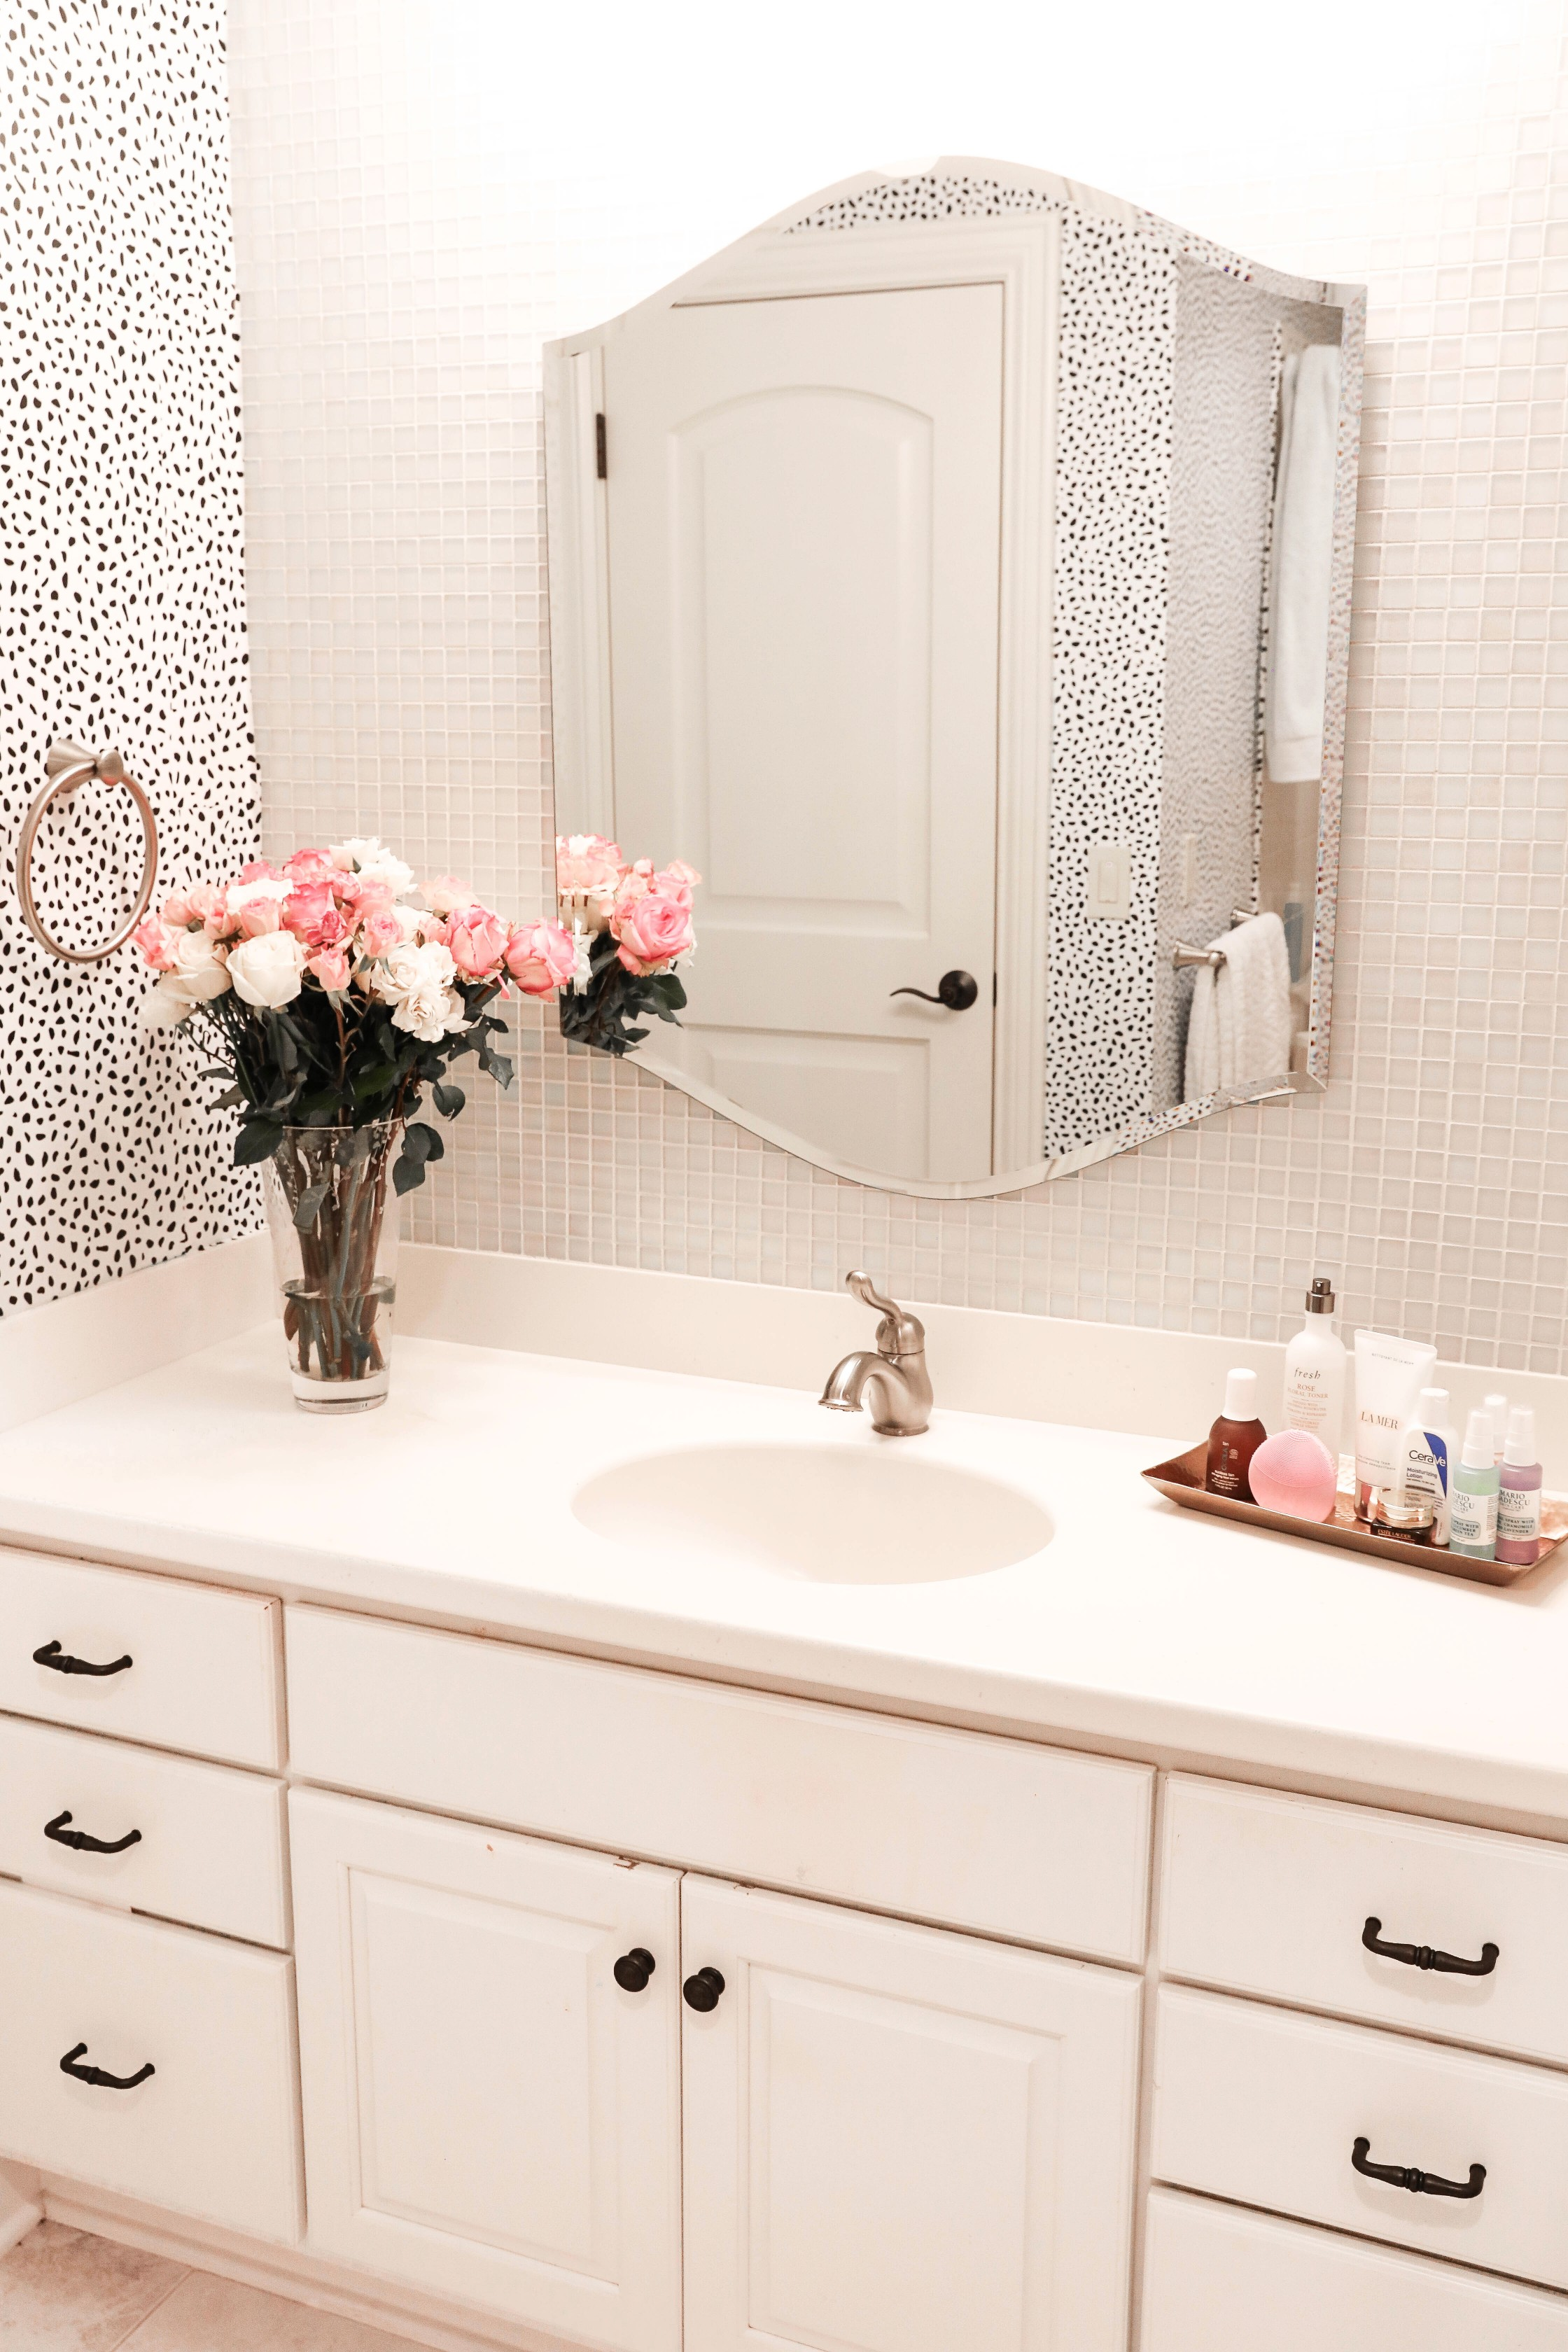 Skin care routine! How I cured my acne and back acne. The cutest dalmation print wallpaper for my bathroom transformation! This list the cutest red robe, talking about other brands such as la mer! Details on fashion blog daily dose of charm by lauren lindmark